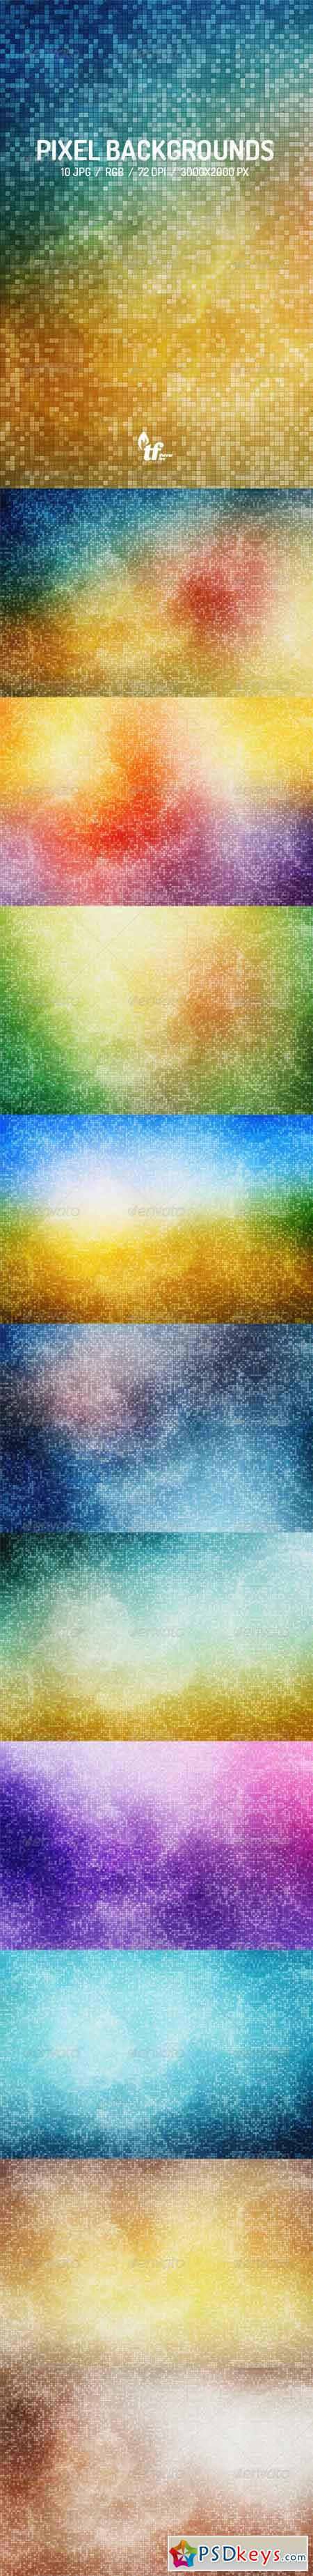 10 Pixel Backgrounds 7795131